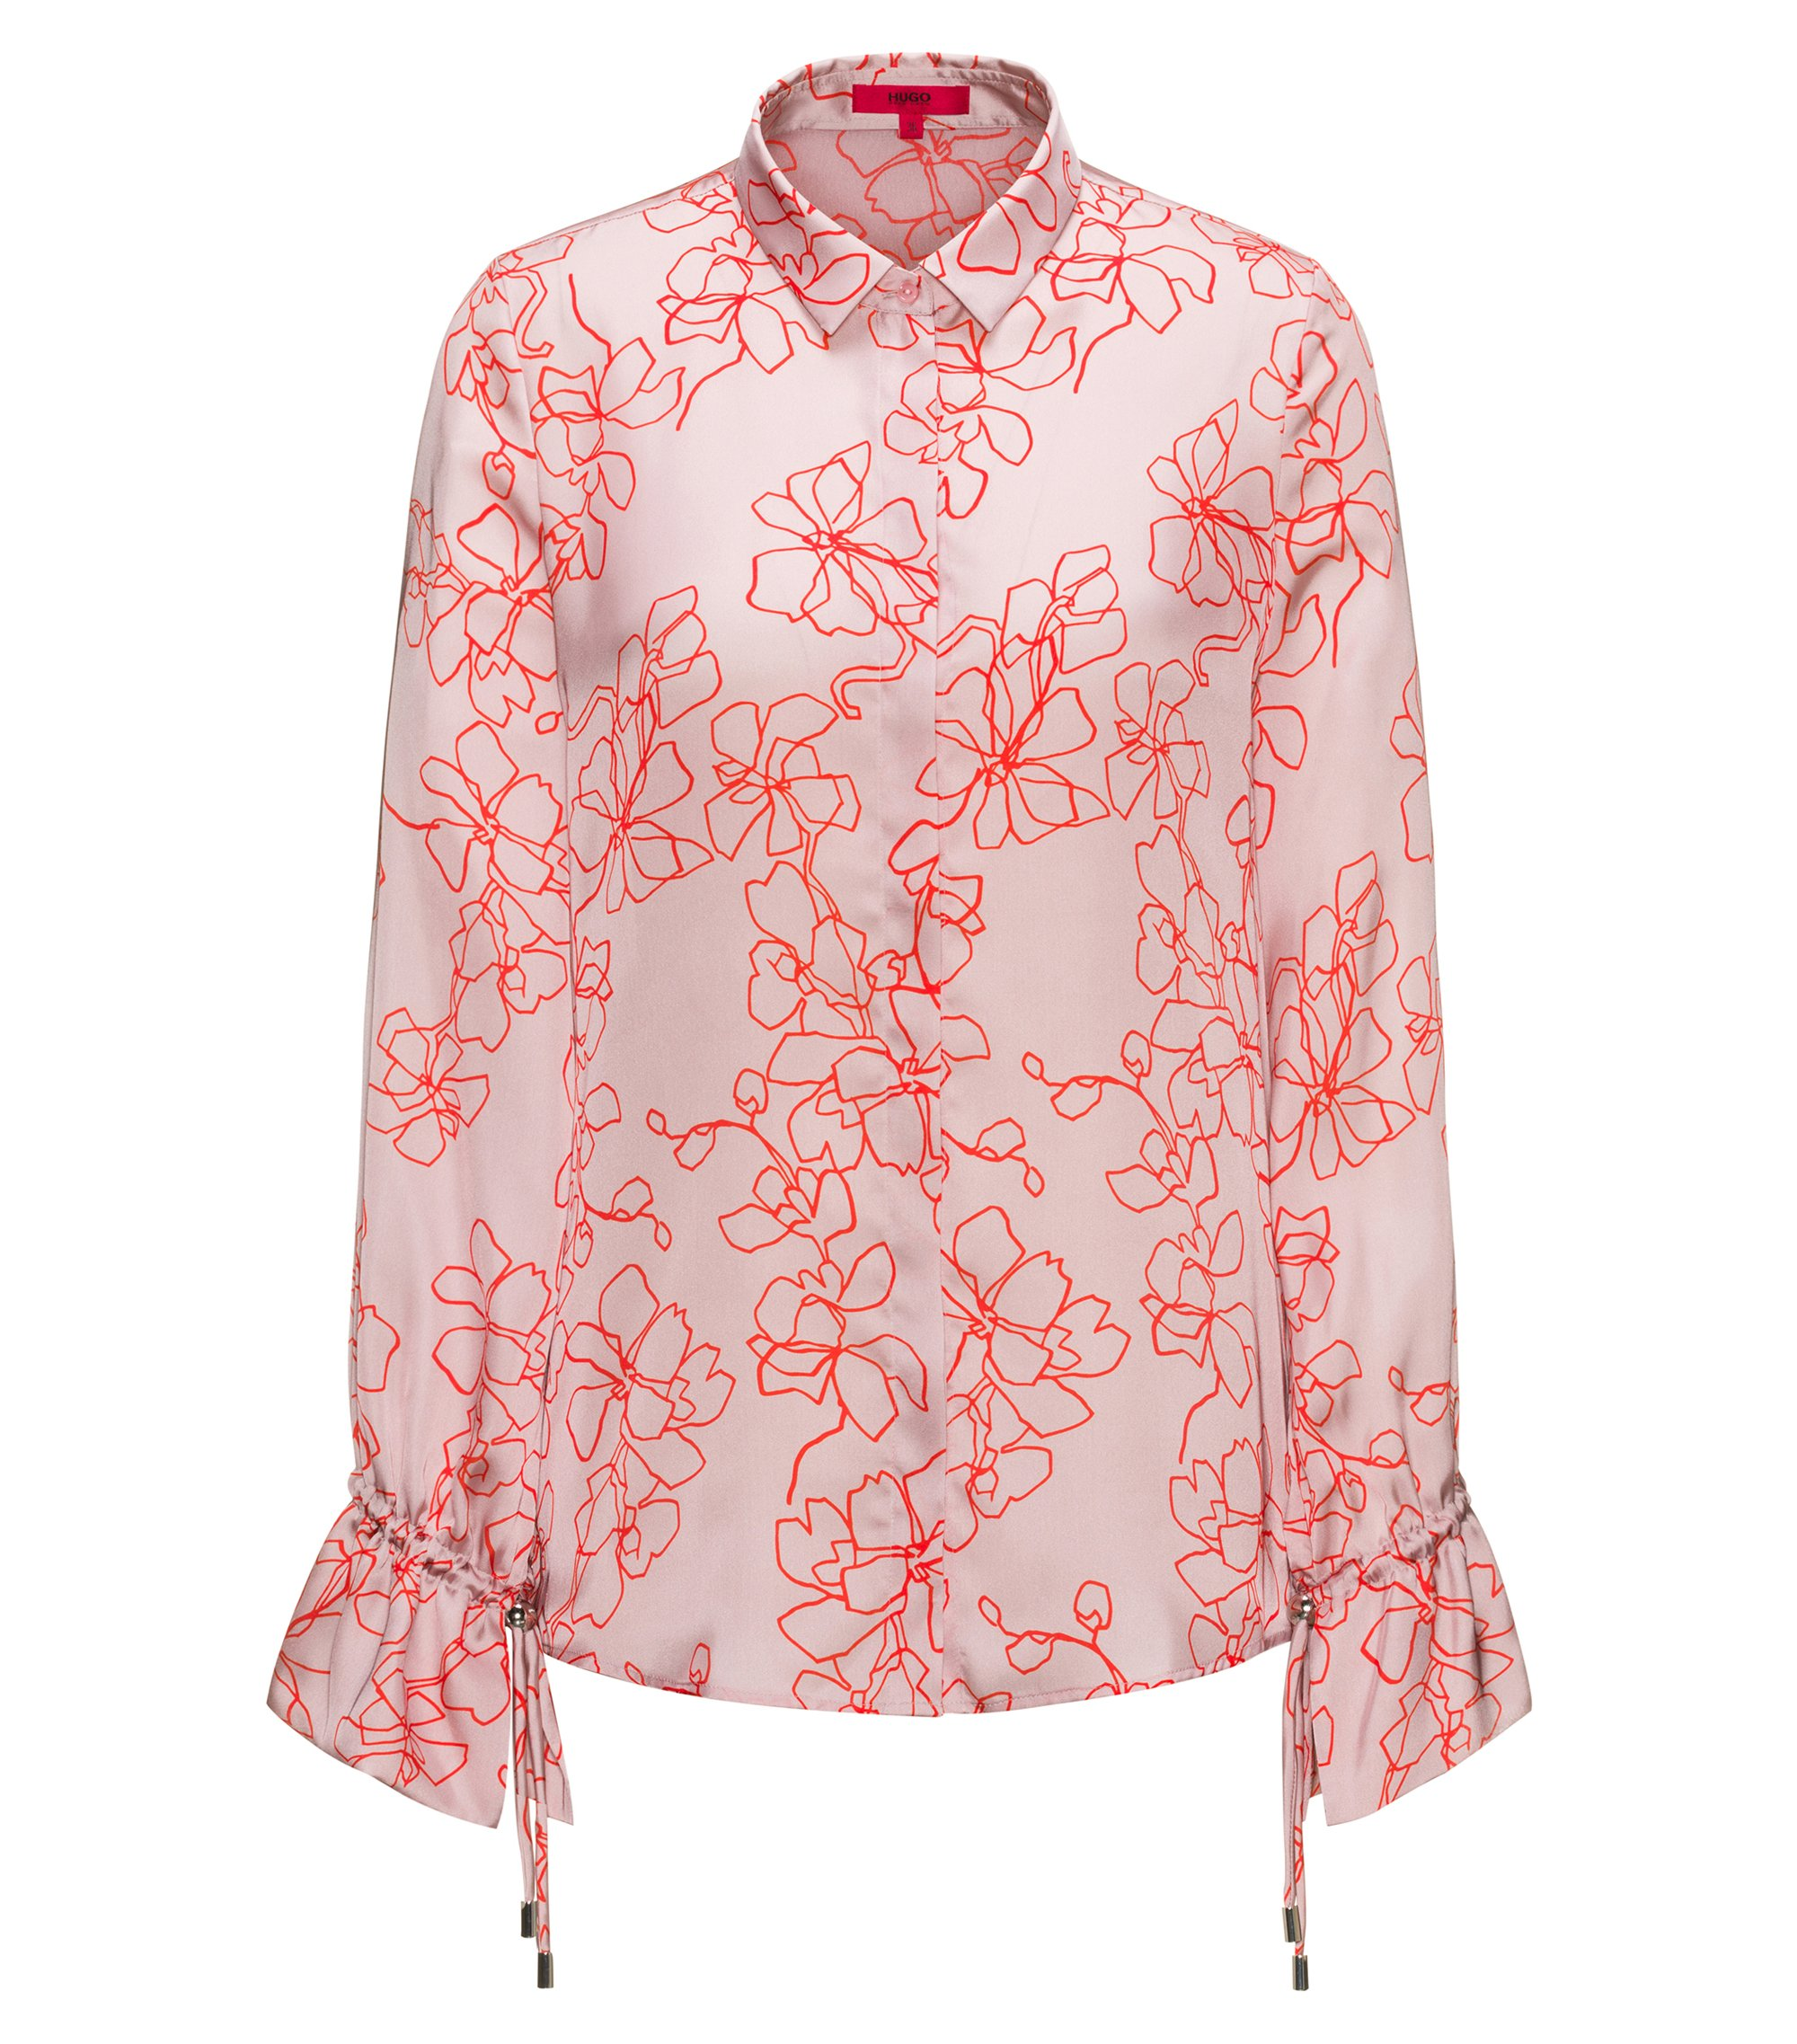 Relaxed-fit floral-print blouse with cuff detail, Patterned